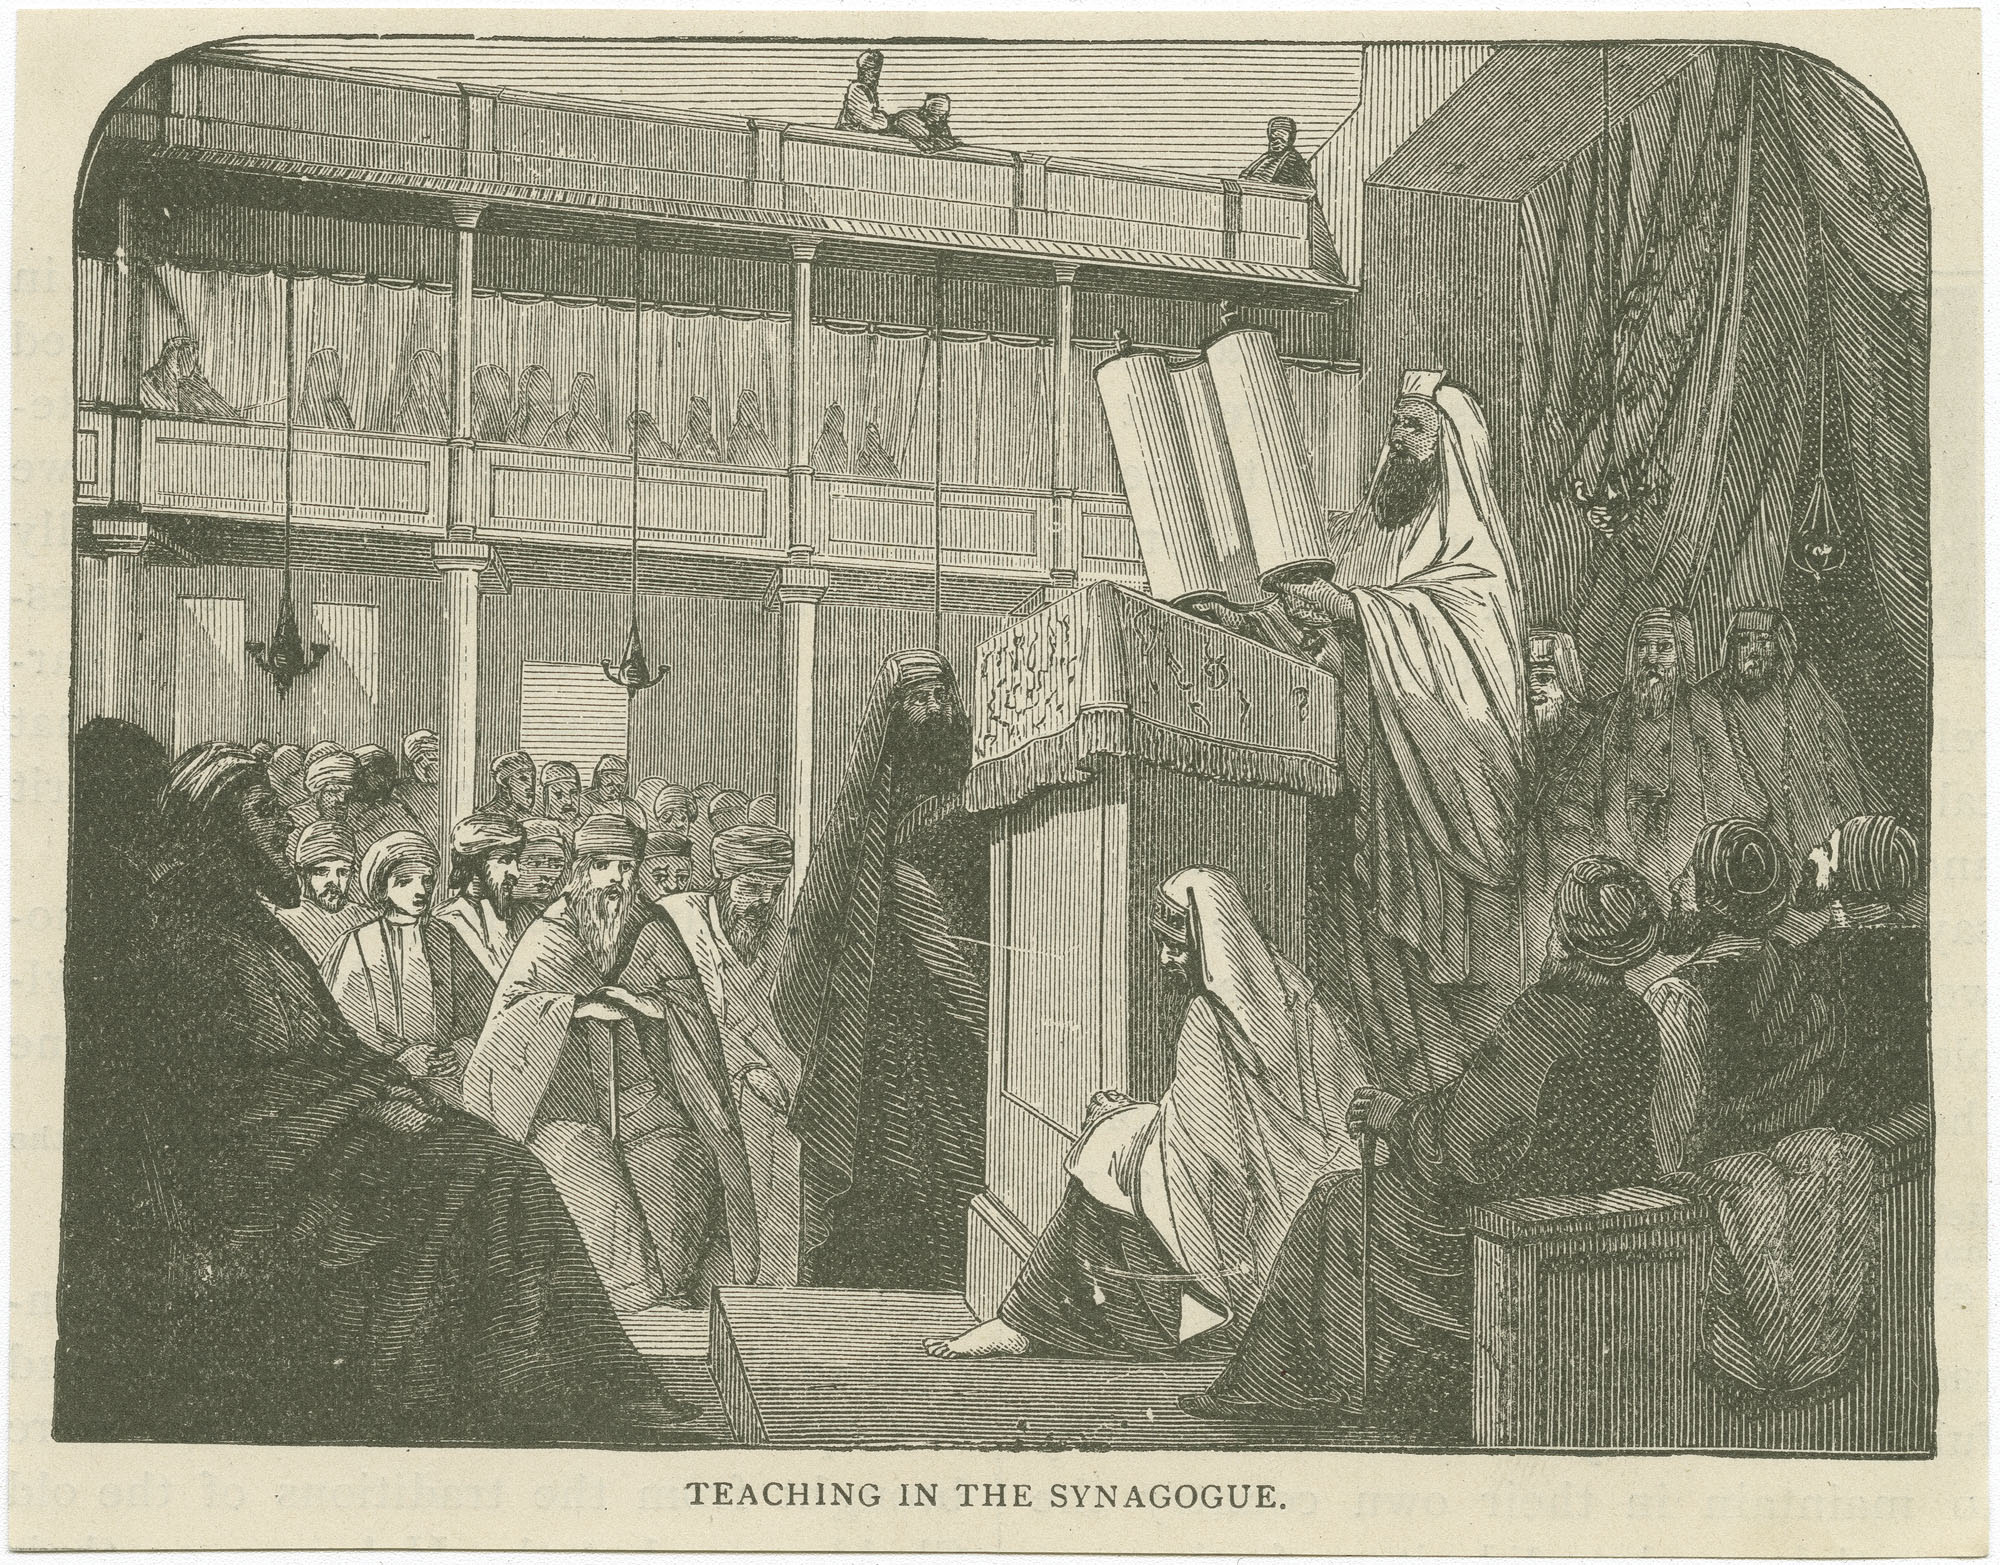 Teaching in the synagogue